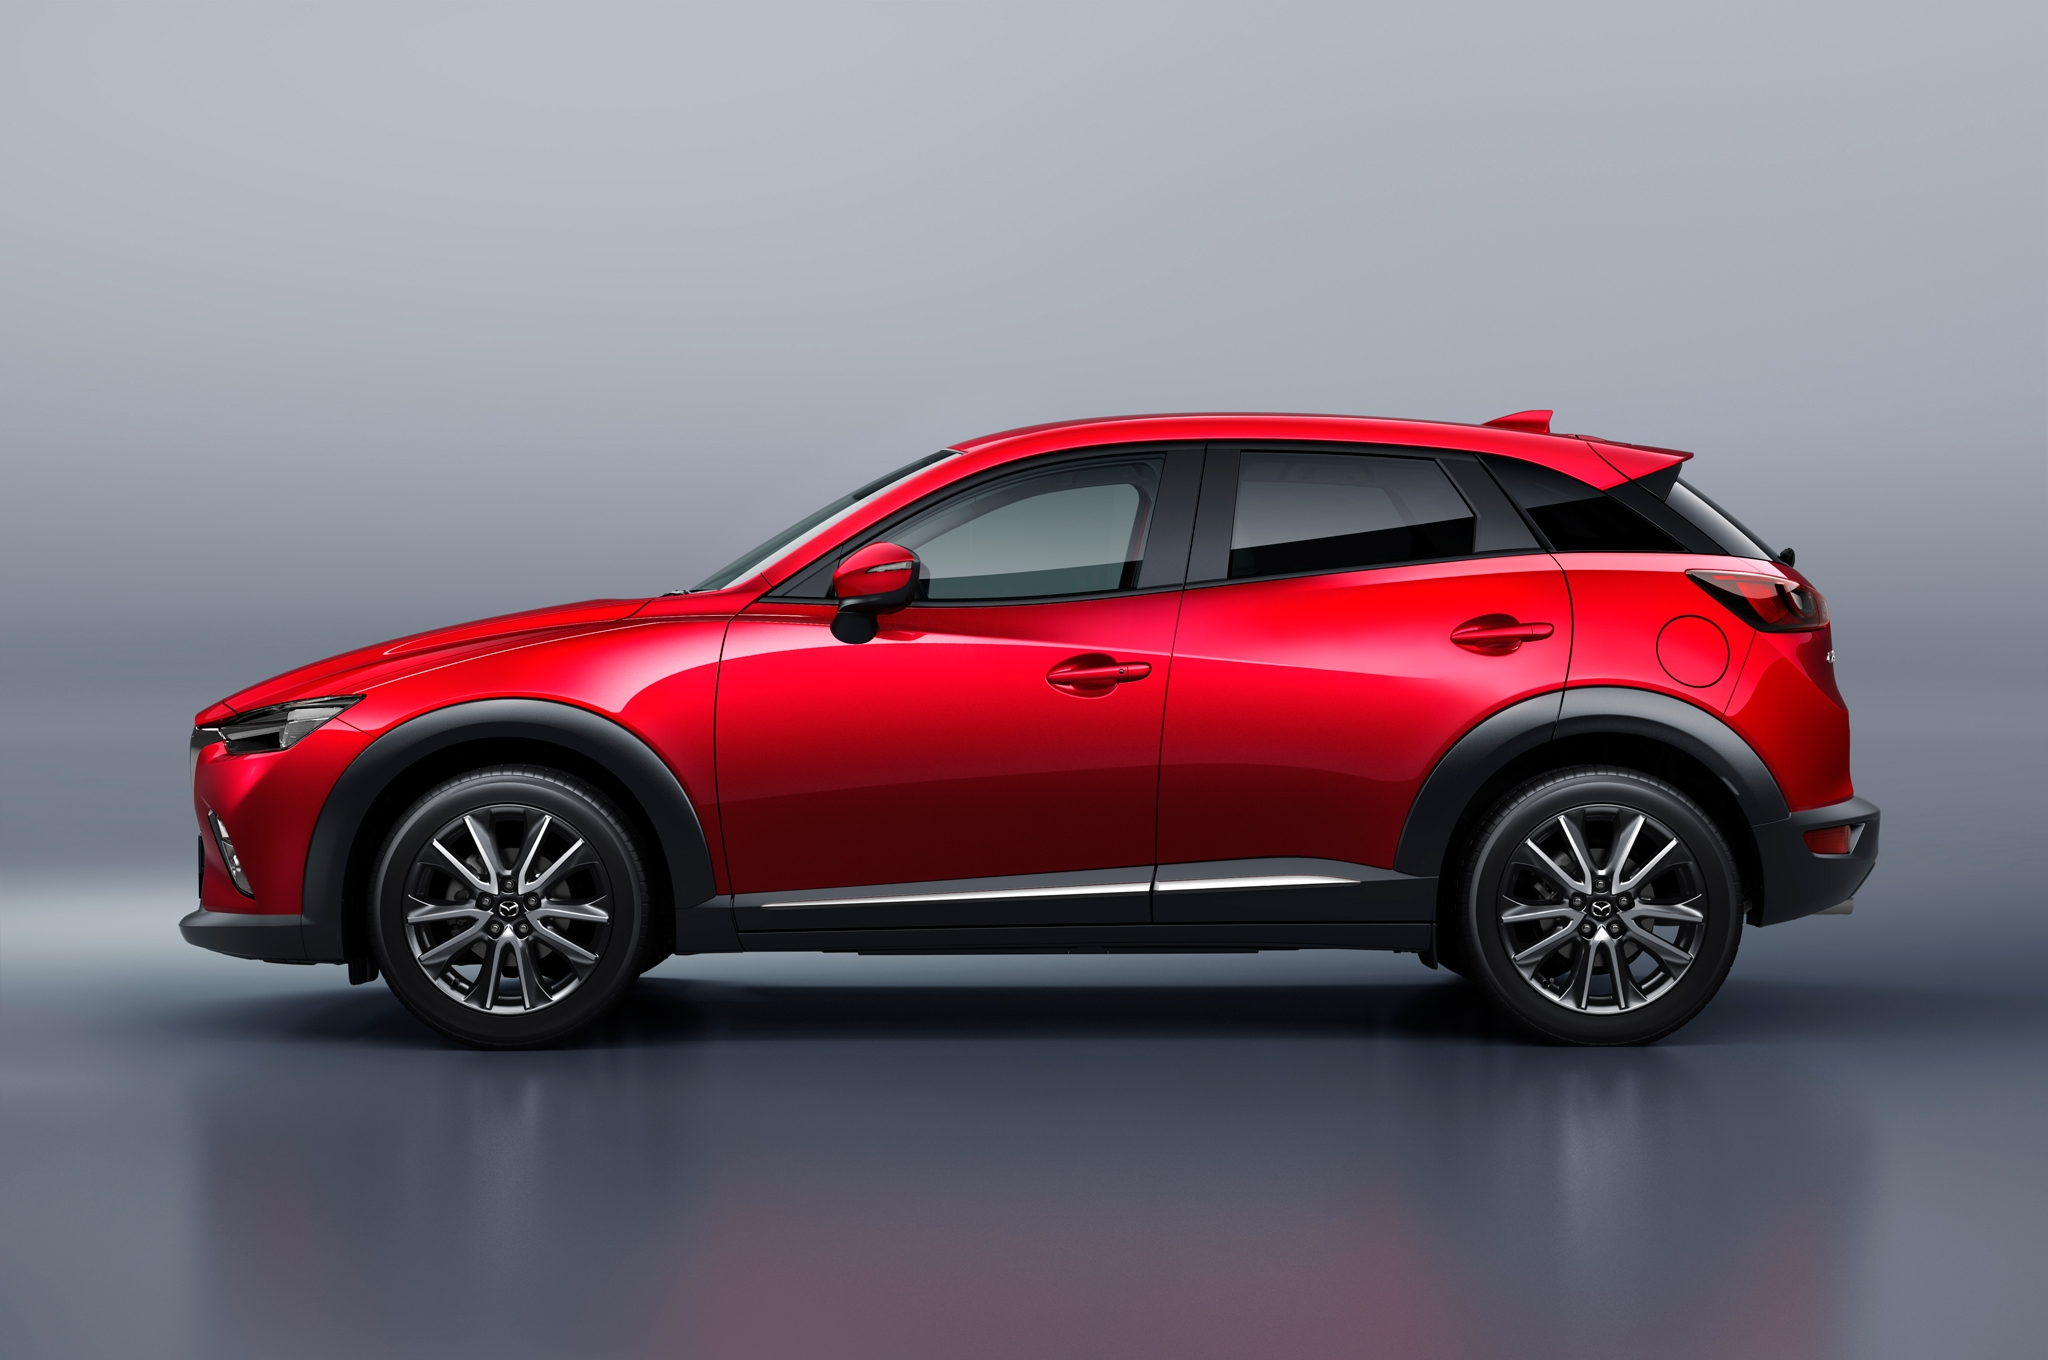 2016 mazda cx 3 information and photos zombiedrive. Black Bedroom Furniture Sets. Home Design Ideas